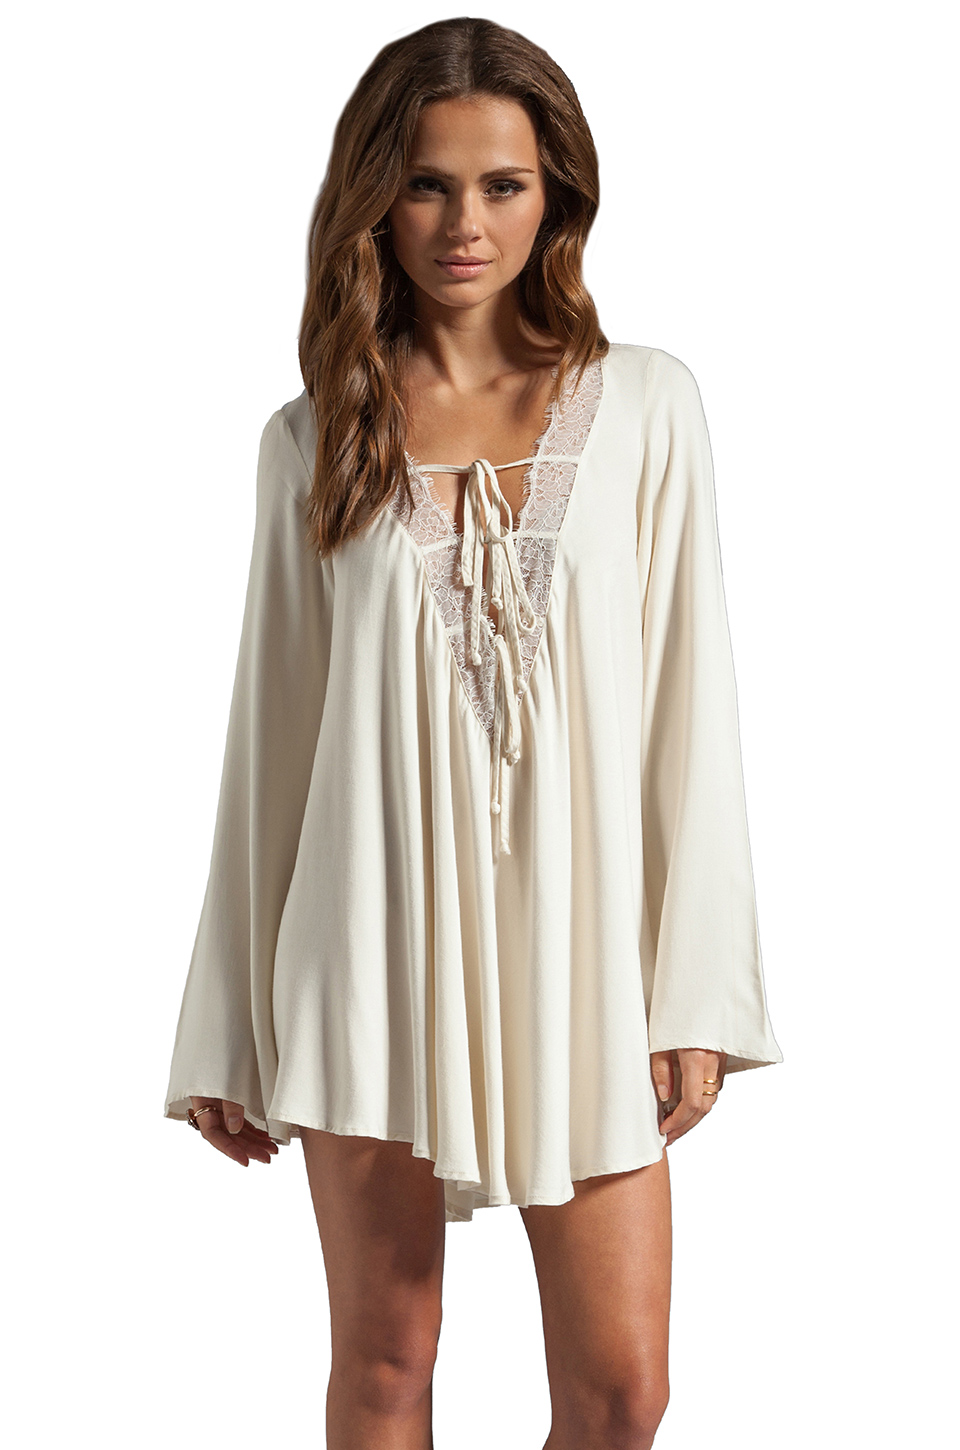 For Love & Lemons Dreamer Dress in White